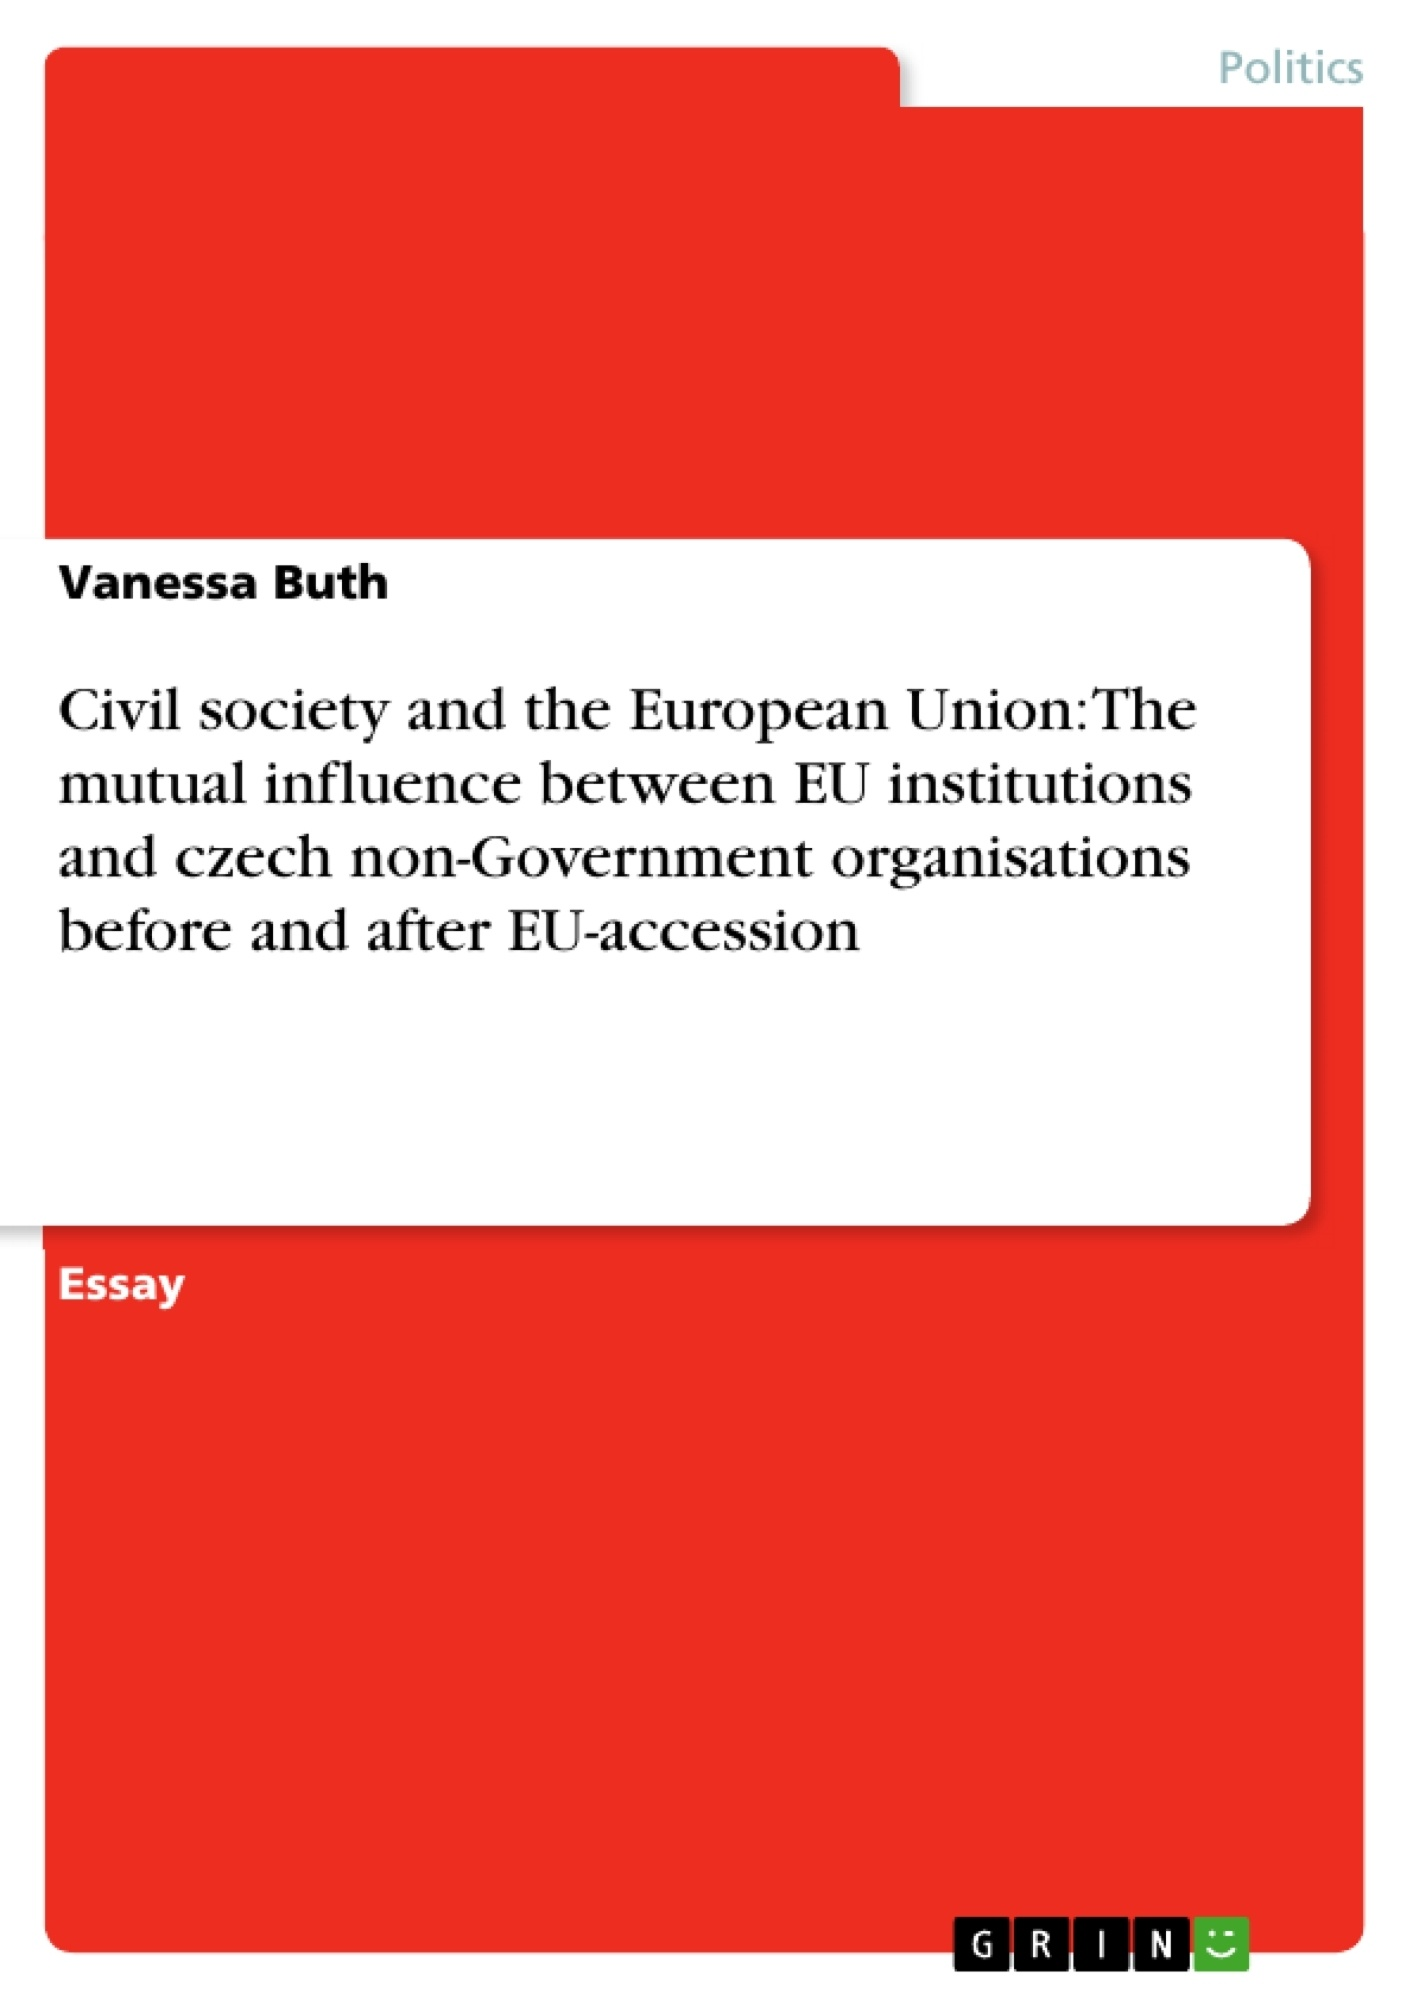 Title: Civil society and the European Union: The mutual influence between EU institutions and czech non-Government organisations before and after EU-accession